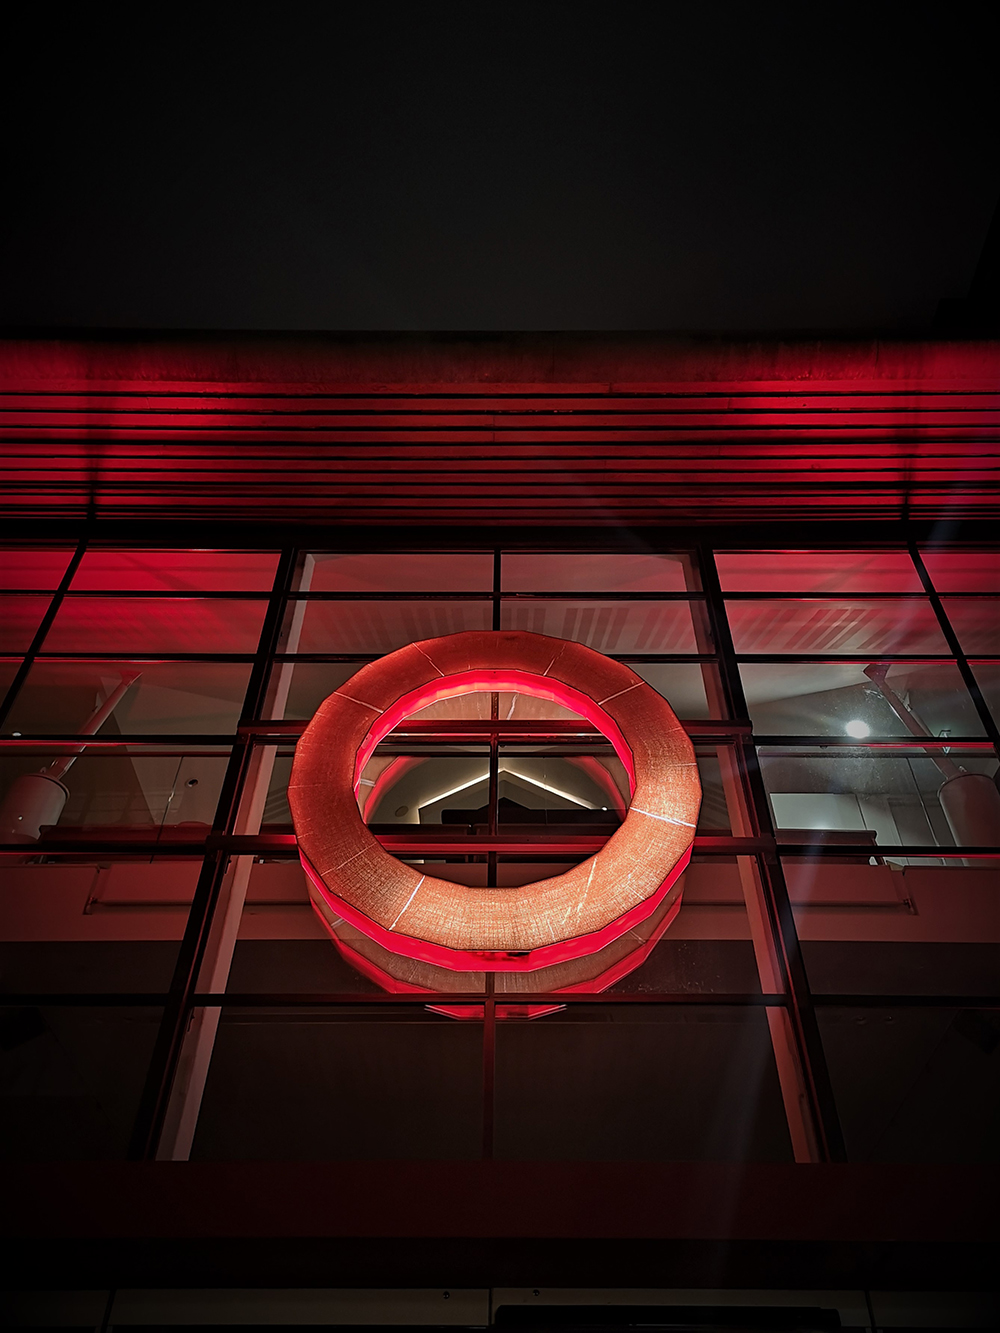 The red circular logo of Shakespeare's Globe is backlit by red light.